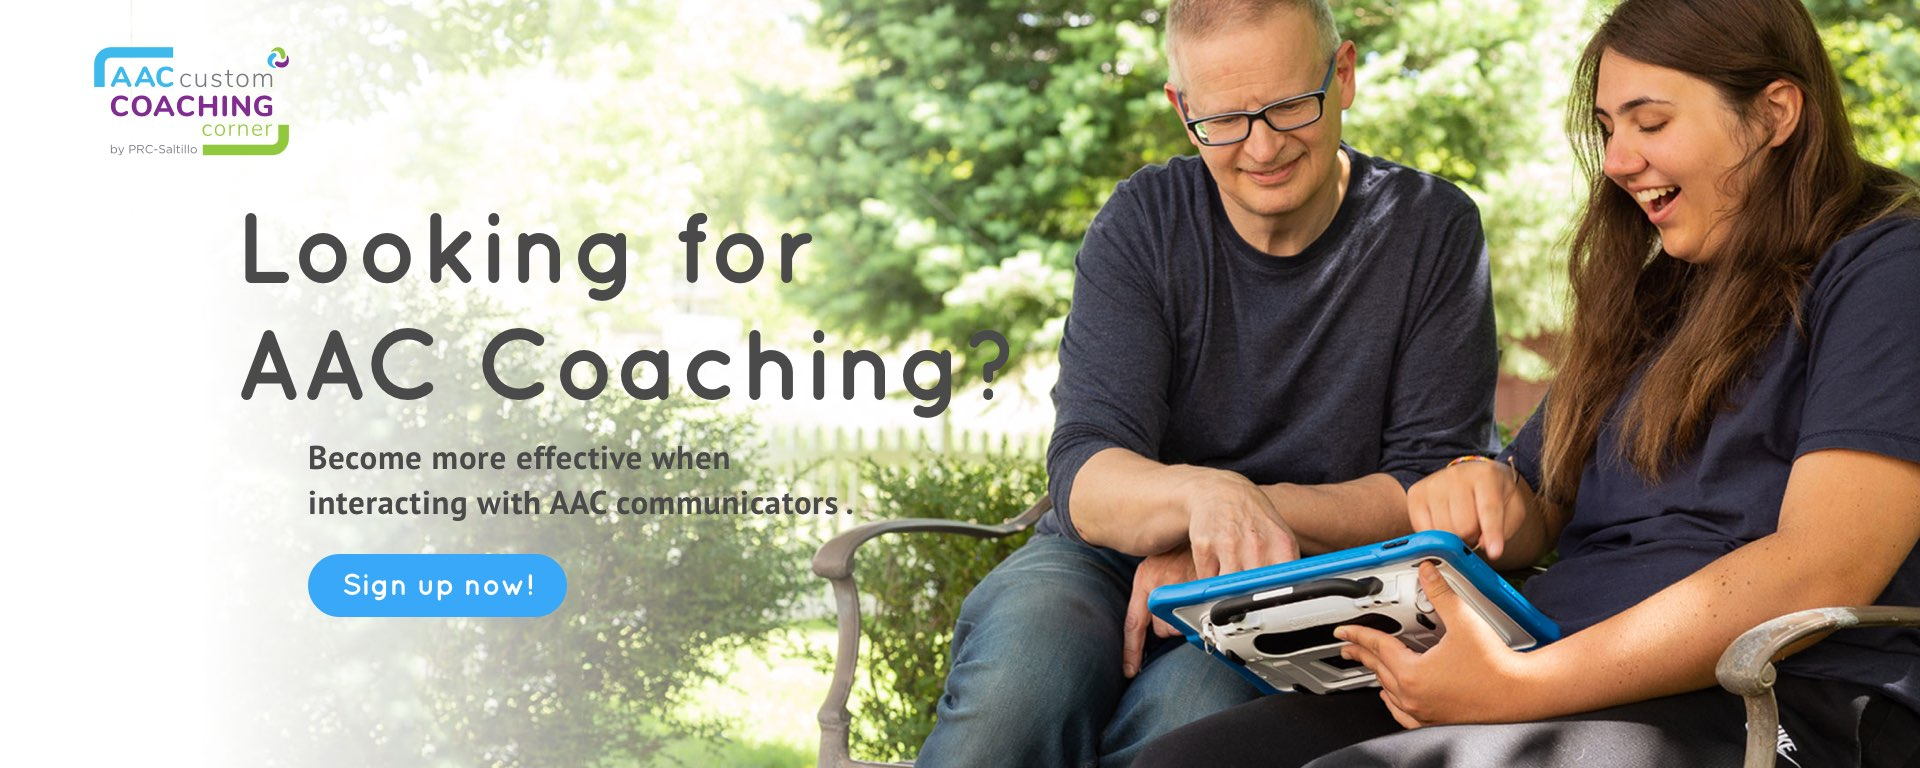 Learn about AAC Coaching